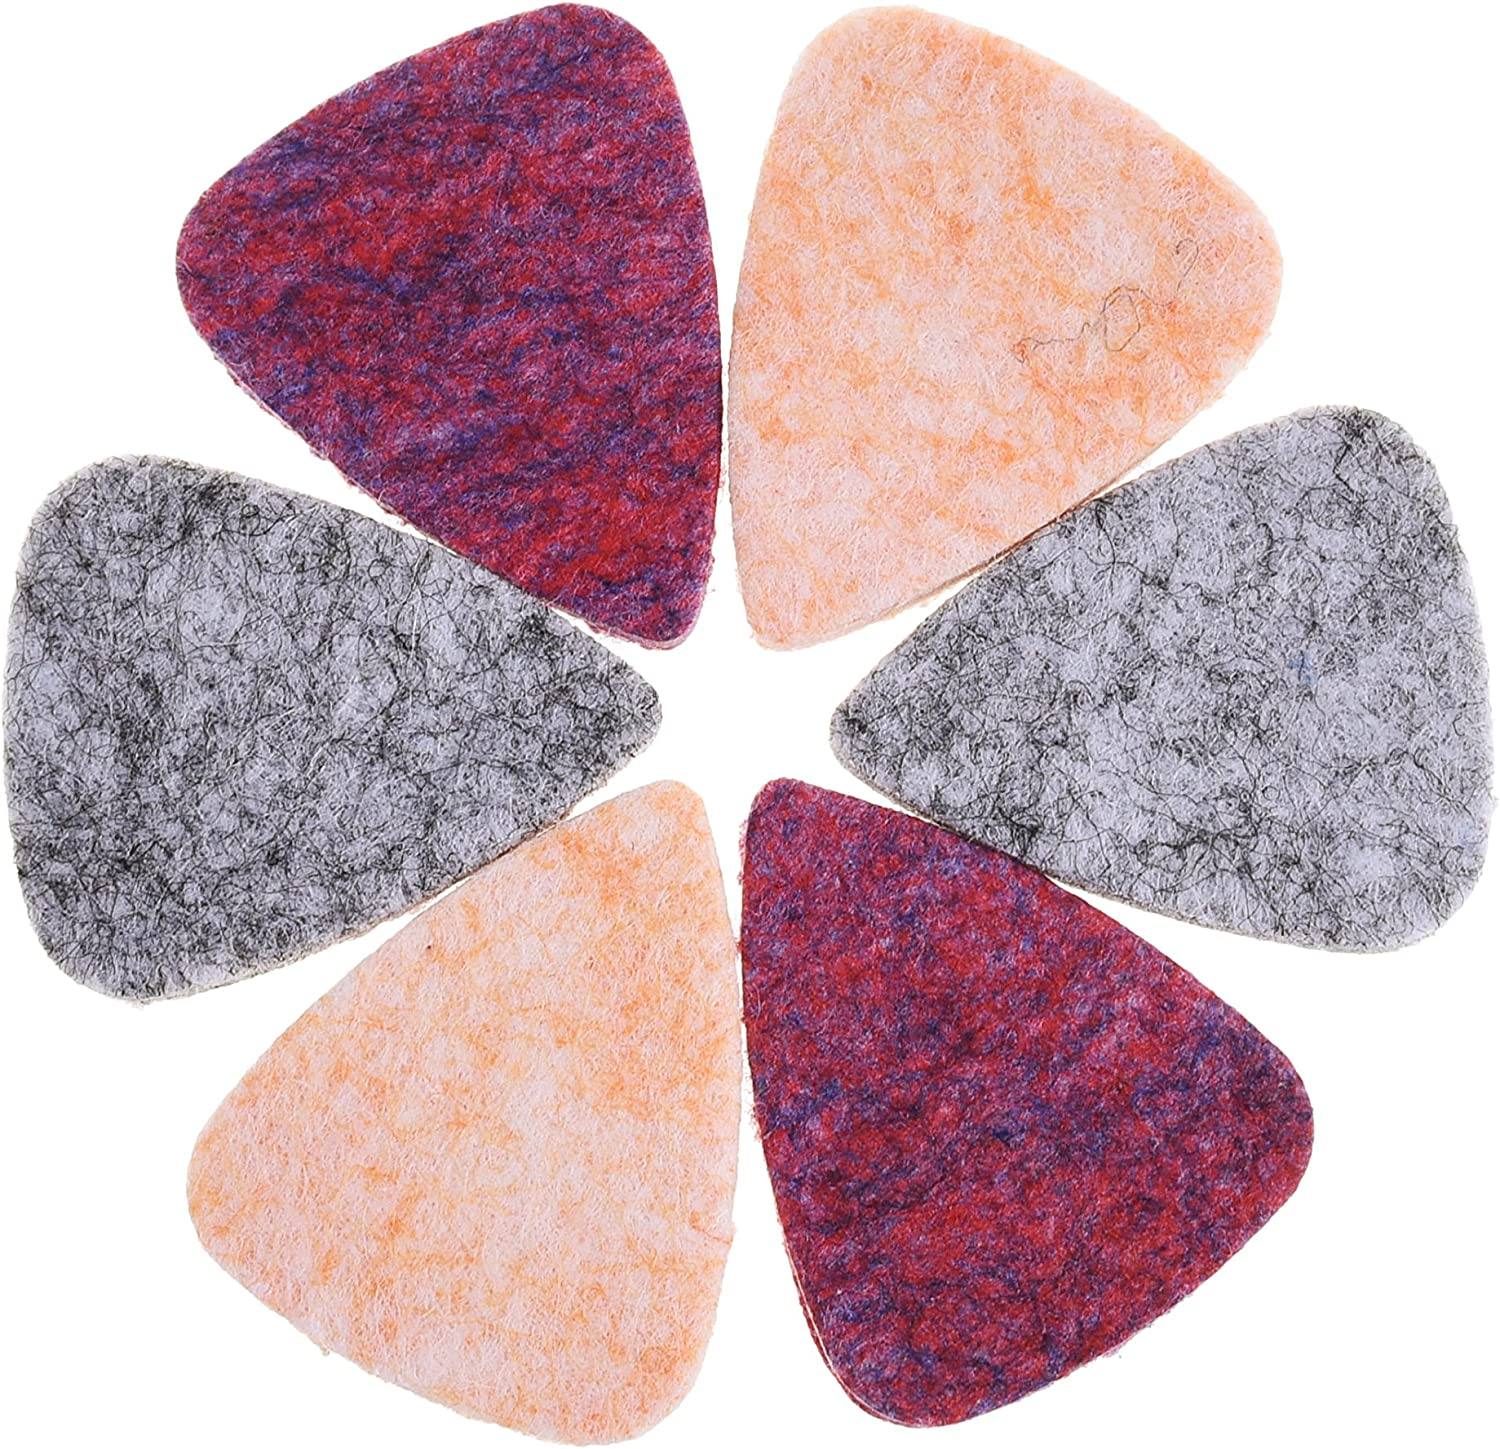 COSMOS Pack of 6 Felt Picks for Protection of Fingernails for Ukulele Guitar or Other Low Tension Instrument